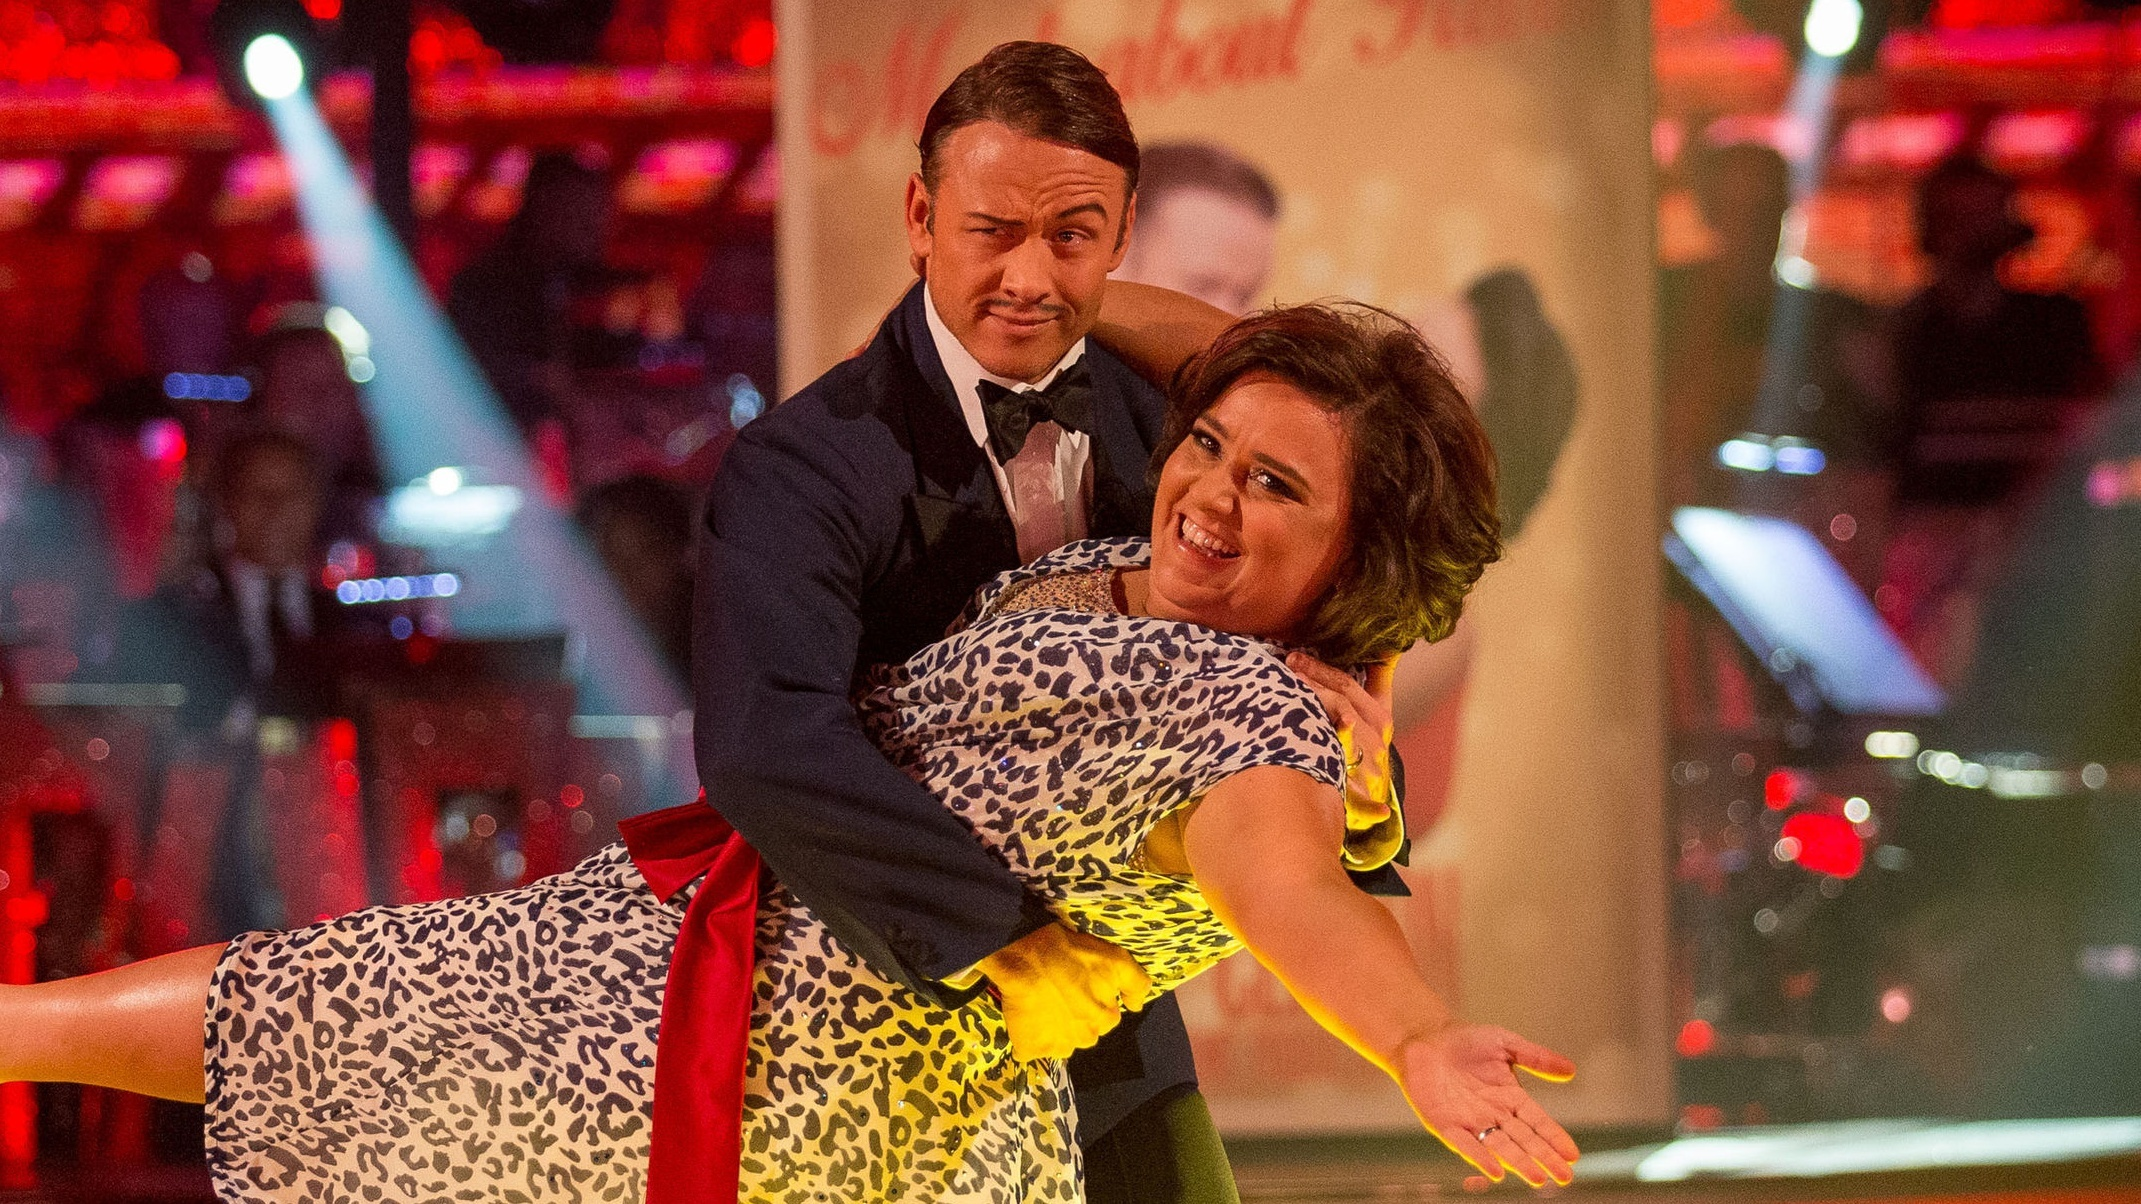 Strictly's Susan Calman to show off 'serious' side in passionate tango (Guy Levy/PA)